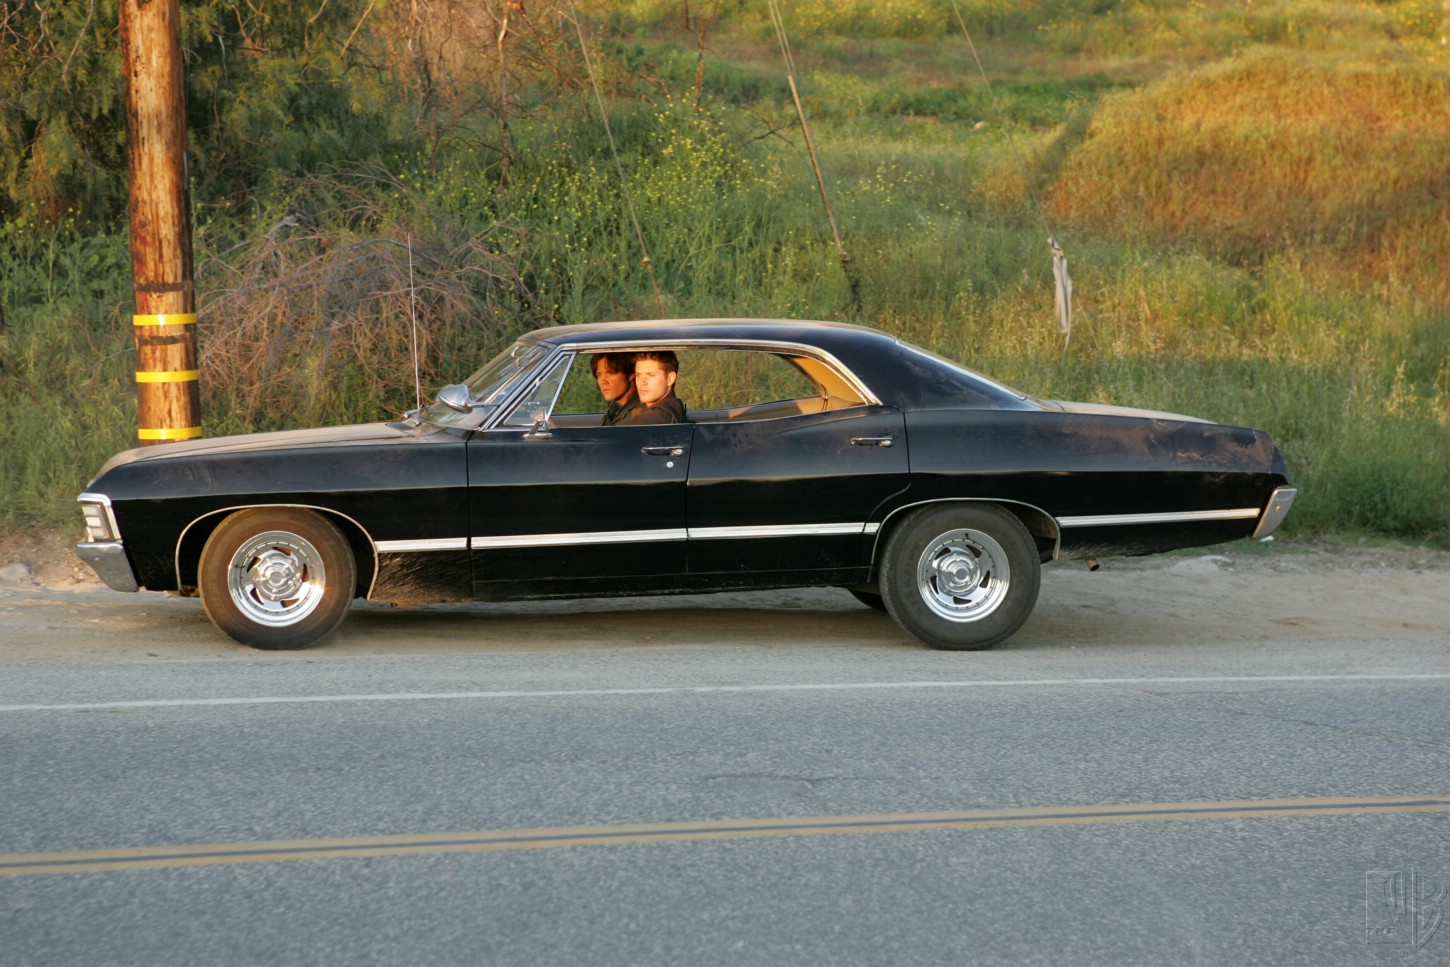 1967 chevrolet impala supernatural metallicar side screencap. Black Bedroom Furniture Sets. Home Design Ideas